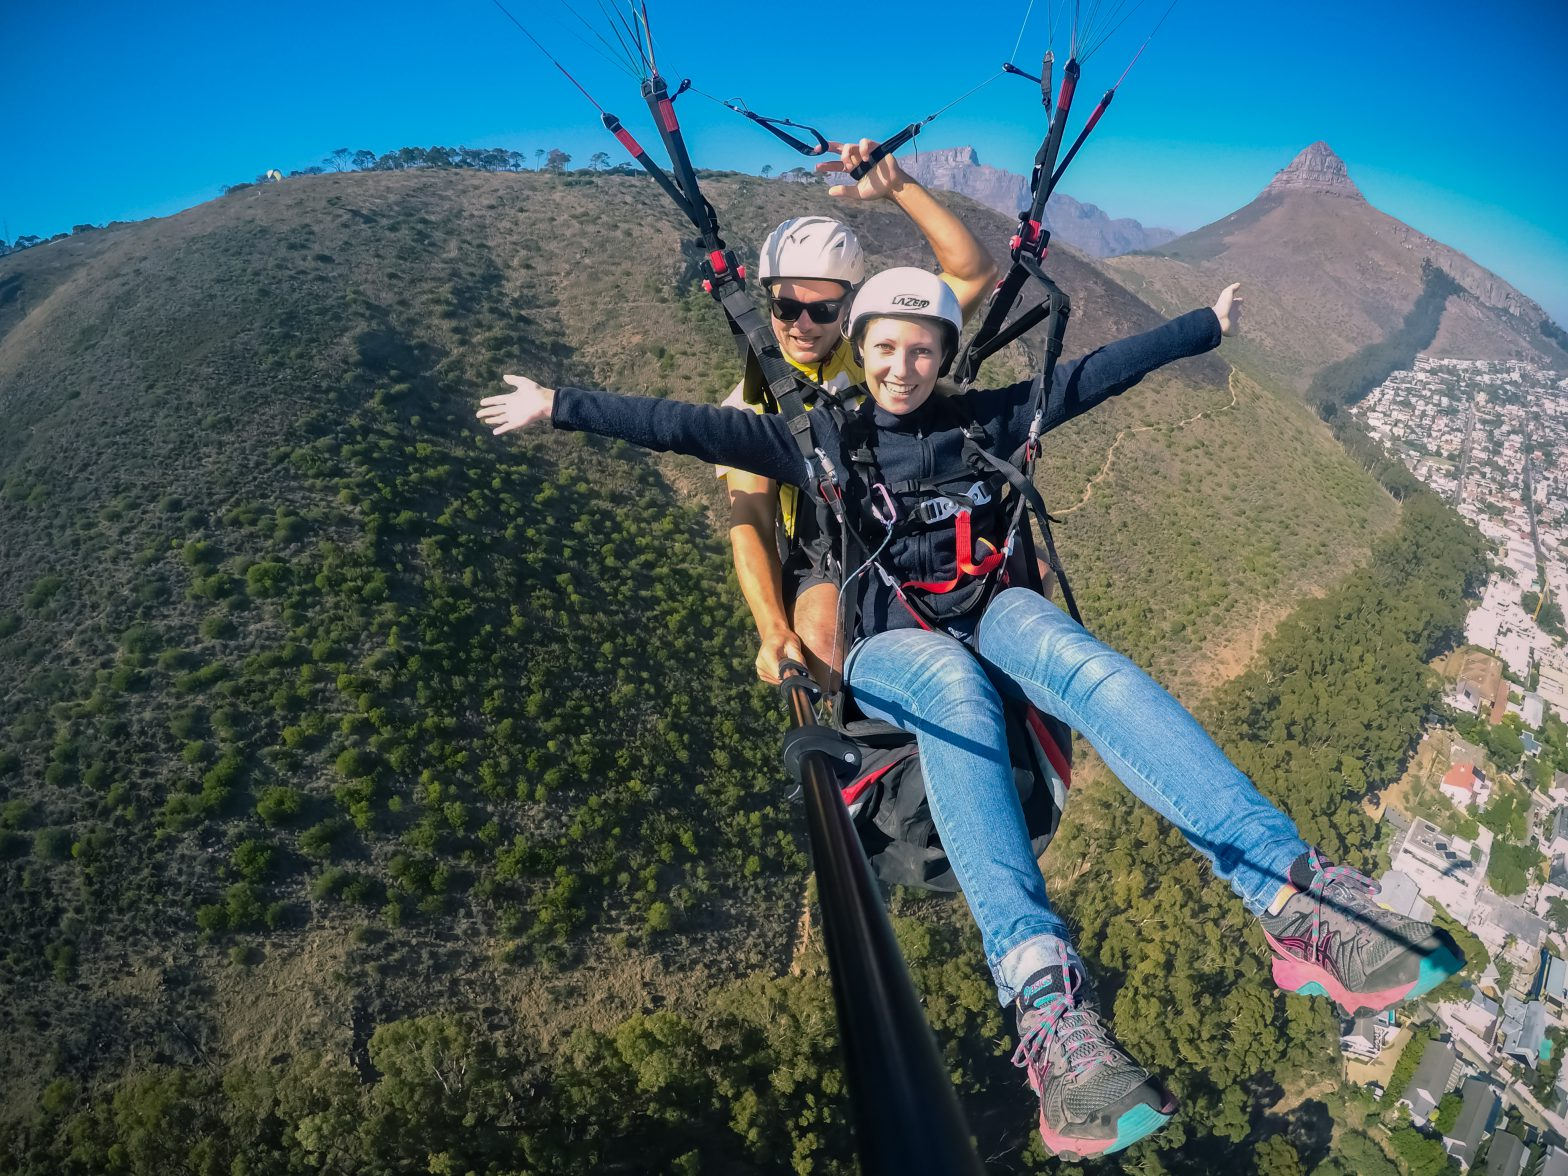 Paragliding, capetown, southafrica, traveling, foreign countries, having fun, Africa, adventure